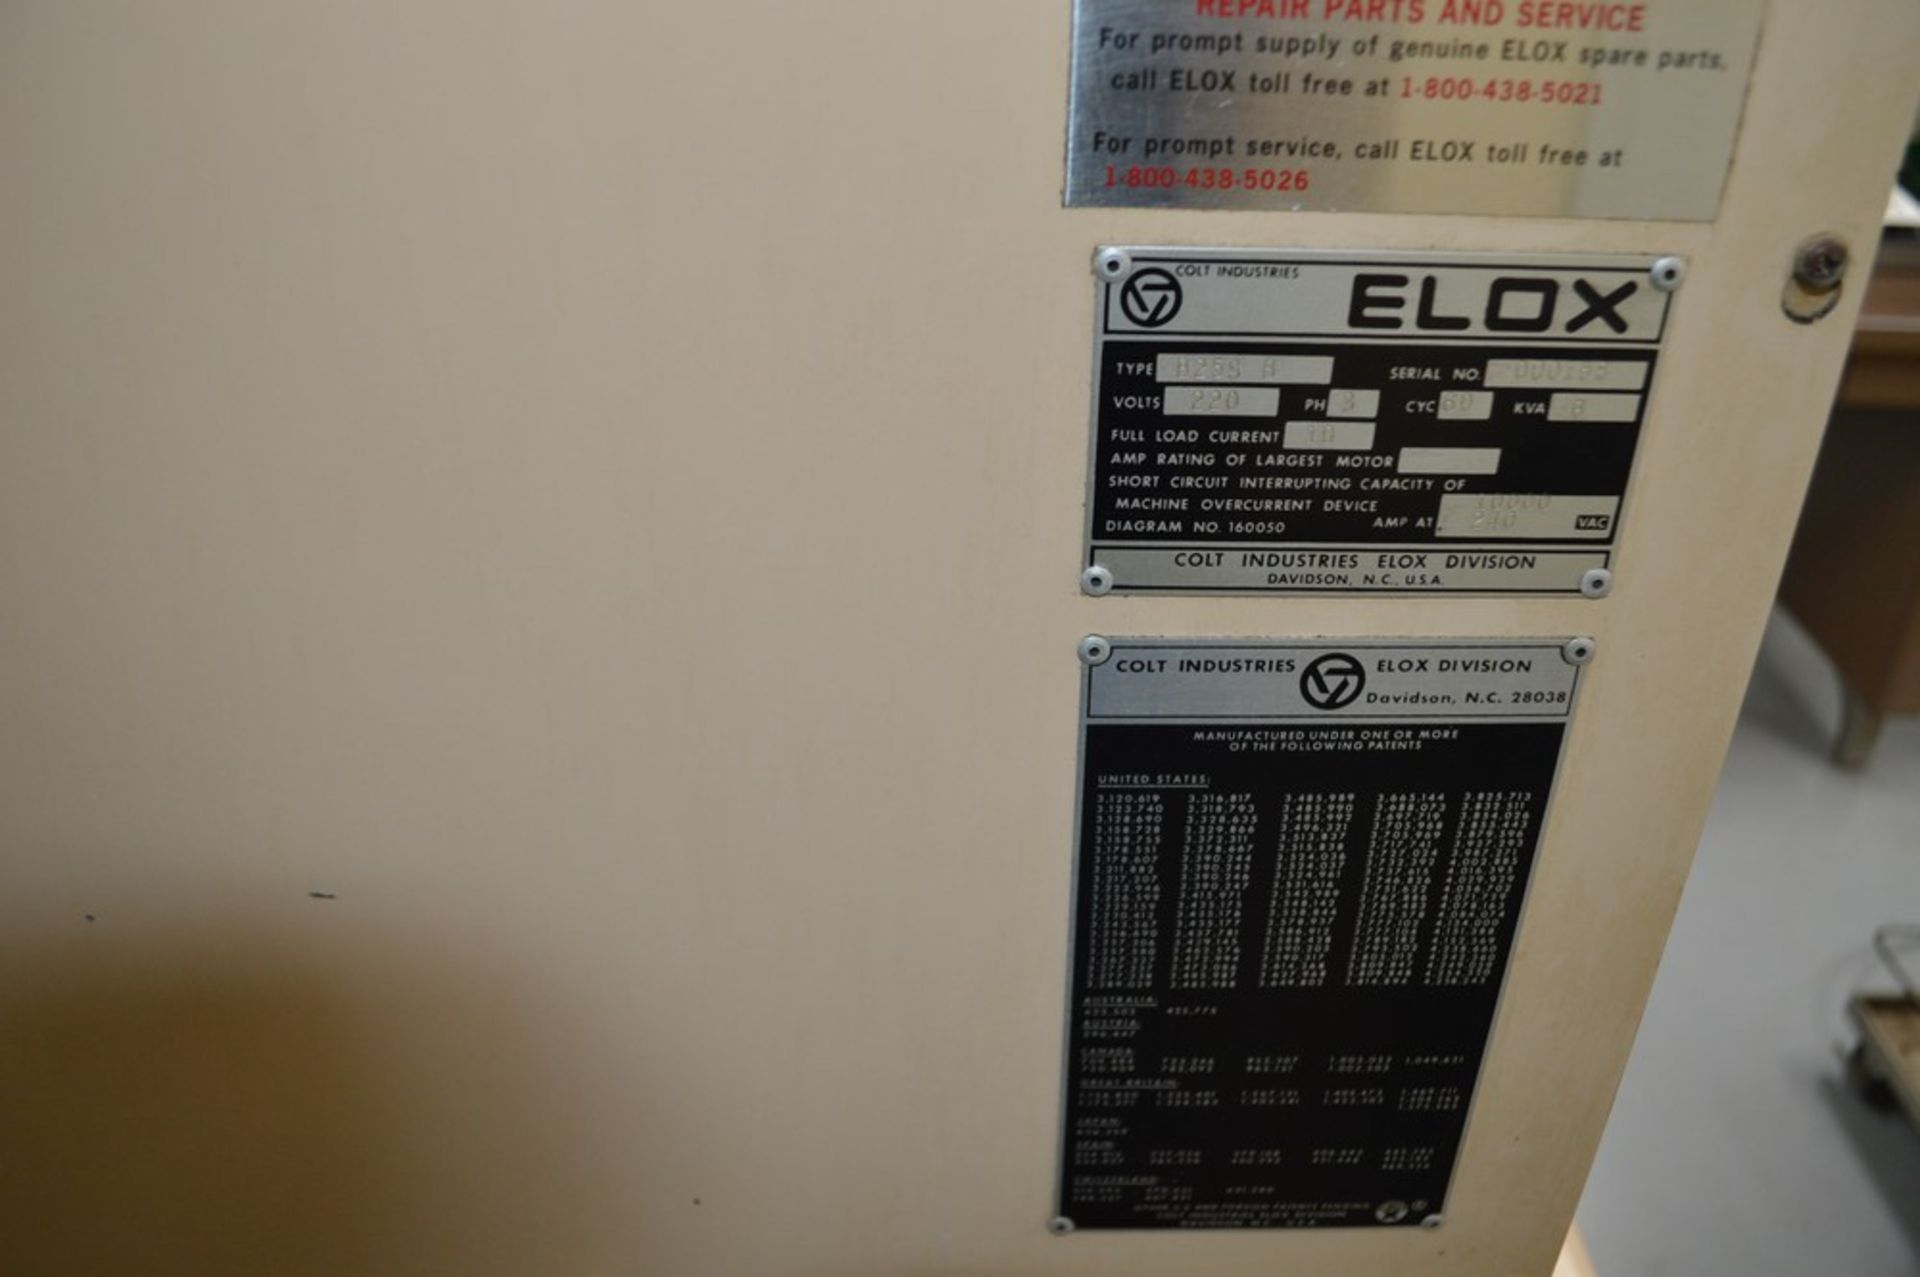 Elox small hole Plunge EDM Systems submersible EDM, Analam mini wizard DRO, benchtop model, 16 x 8 - Image 7 of 8